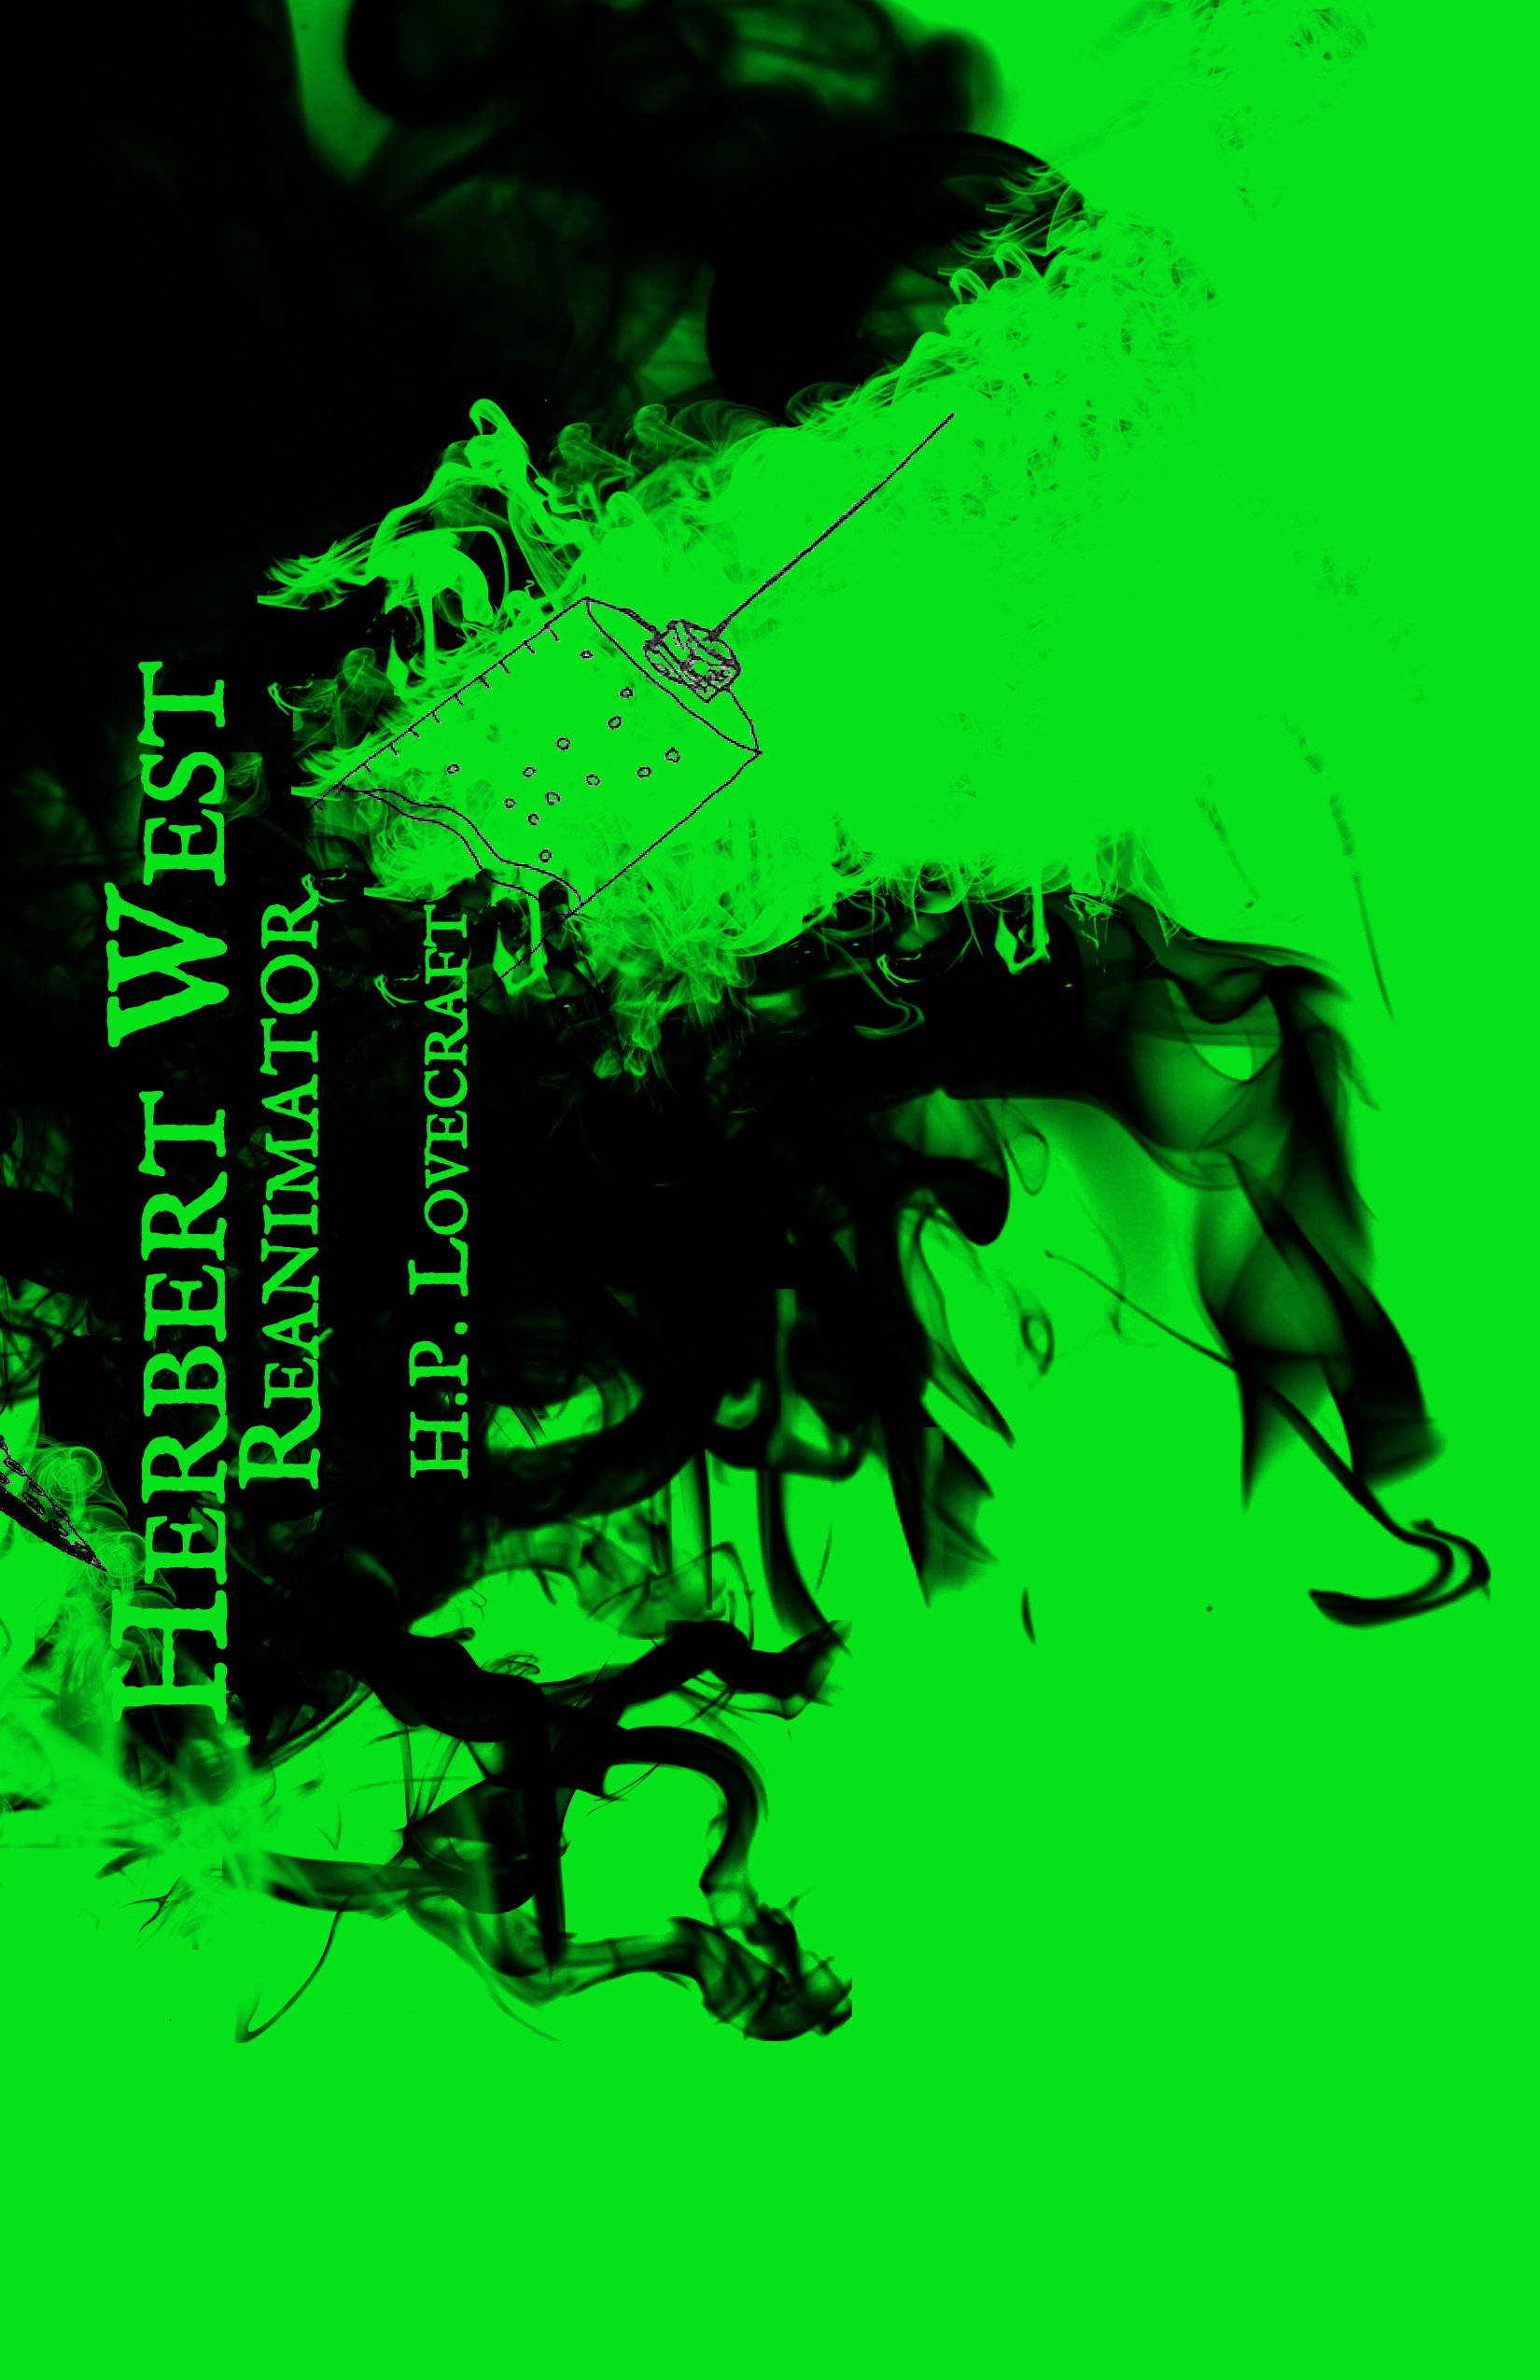 Herbert West - Reanimator, Lovecraft, H.P.